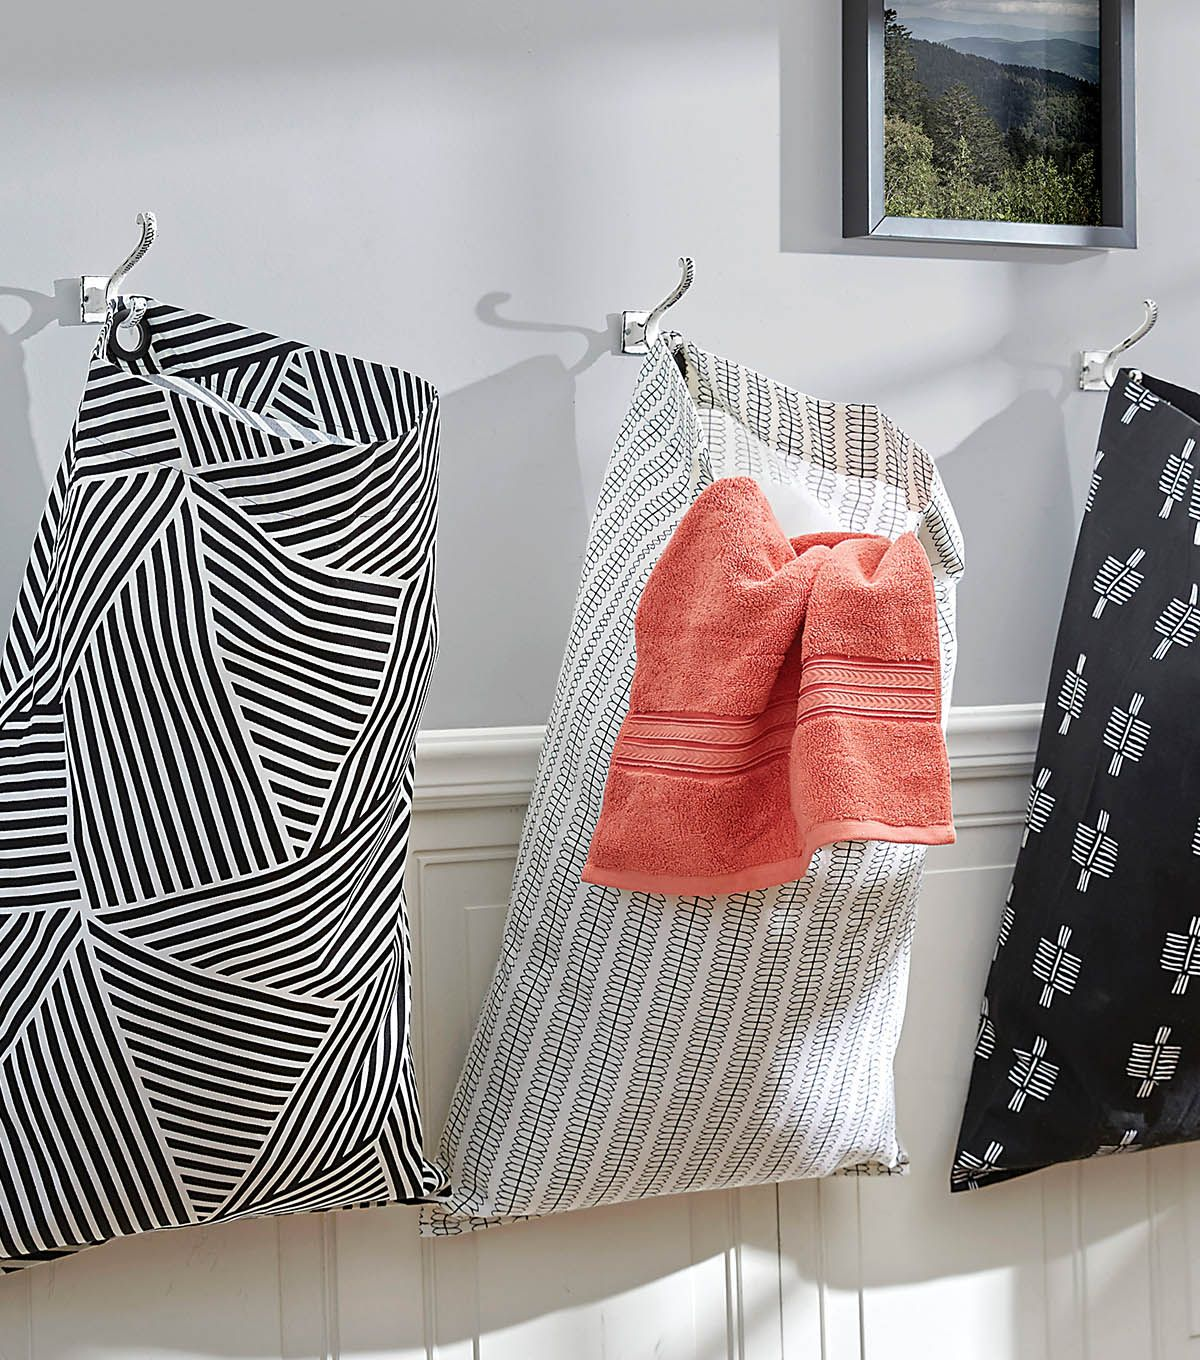 How To Make A Grommet Laundry Bag Laundry Bags Diy Hanging Laundry Bag Laundry Bags Pattern